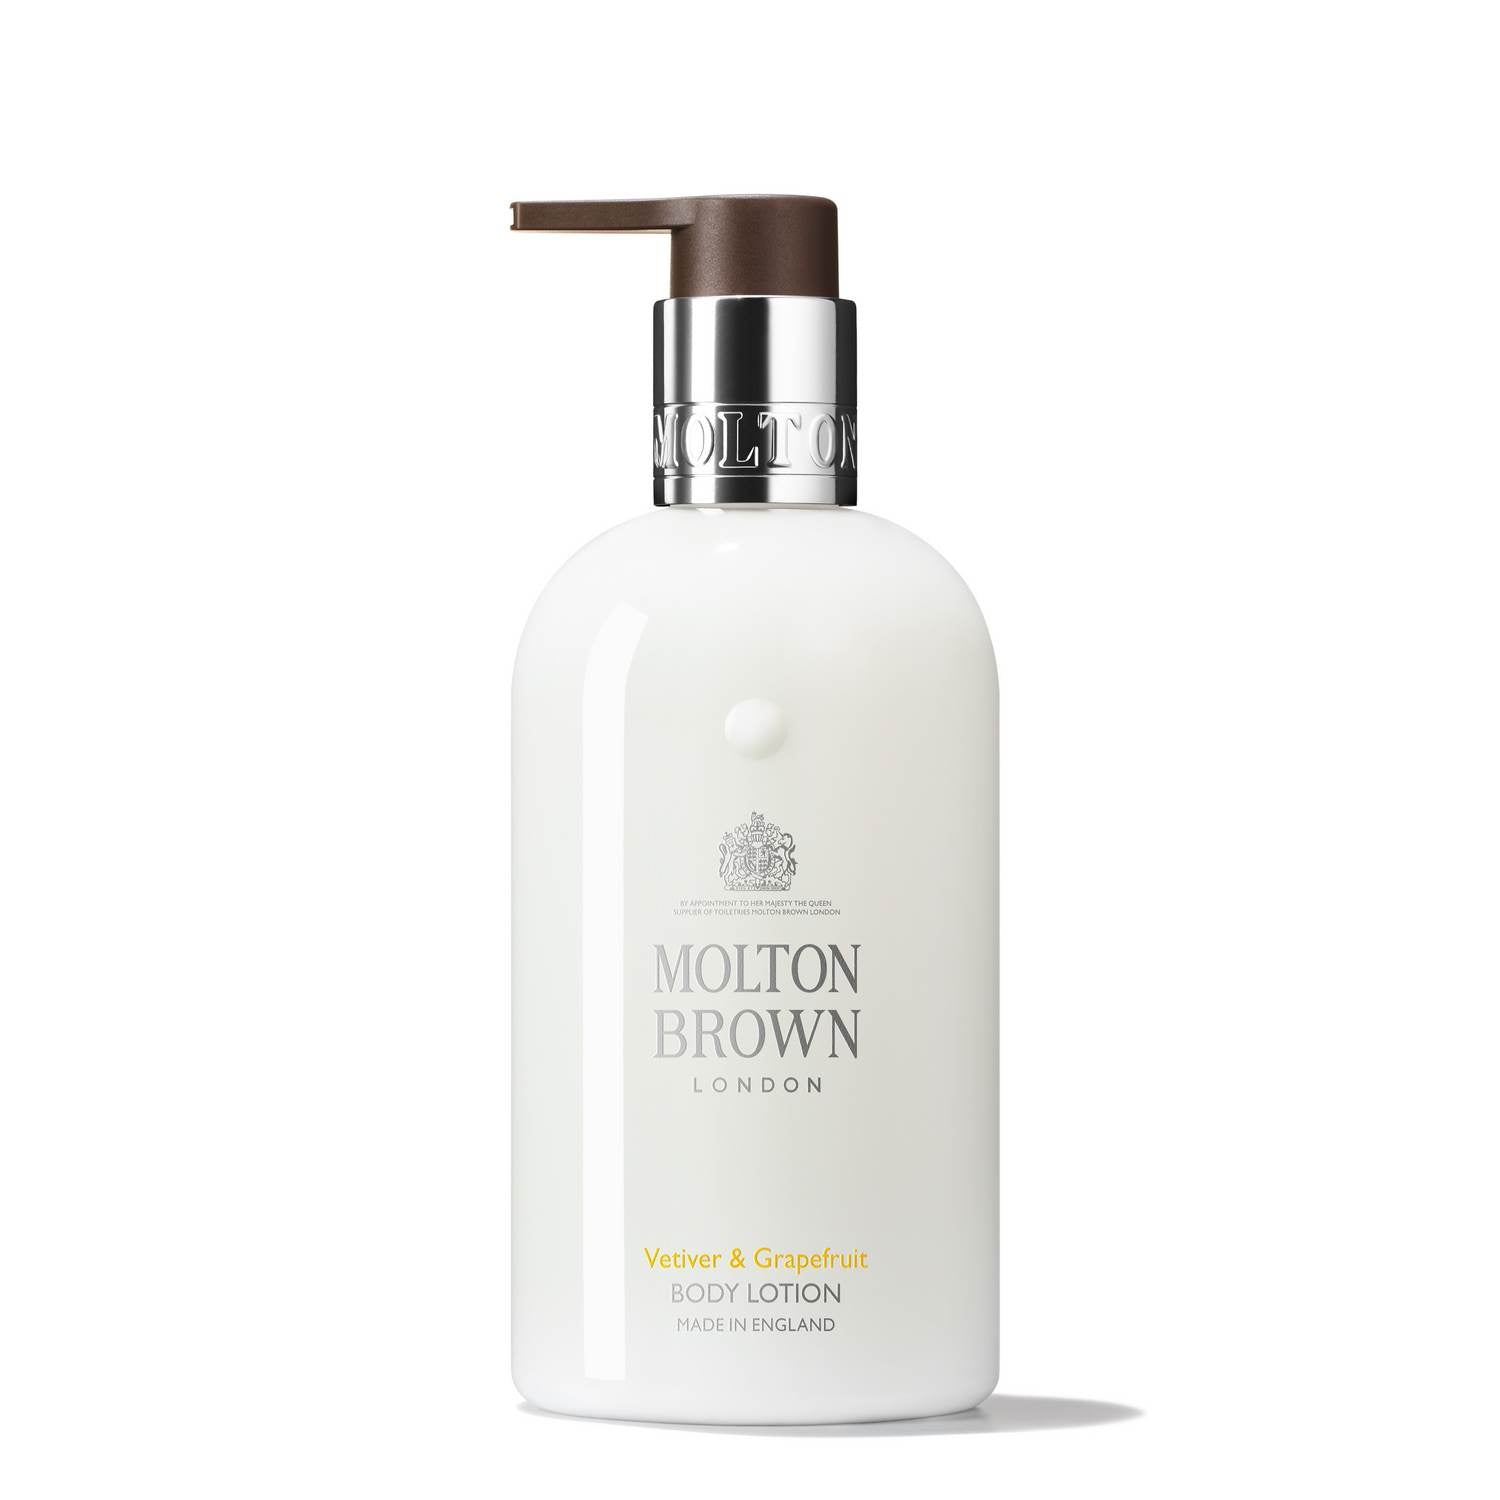 Moton Brown Vetiver & Grapefruit Body Lotion